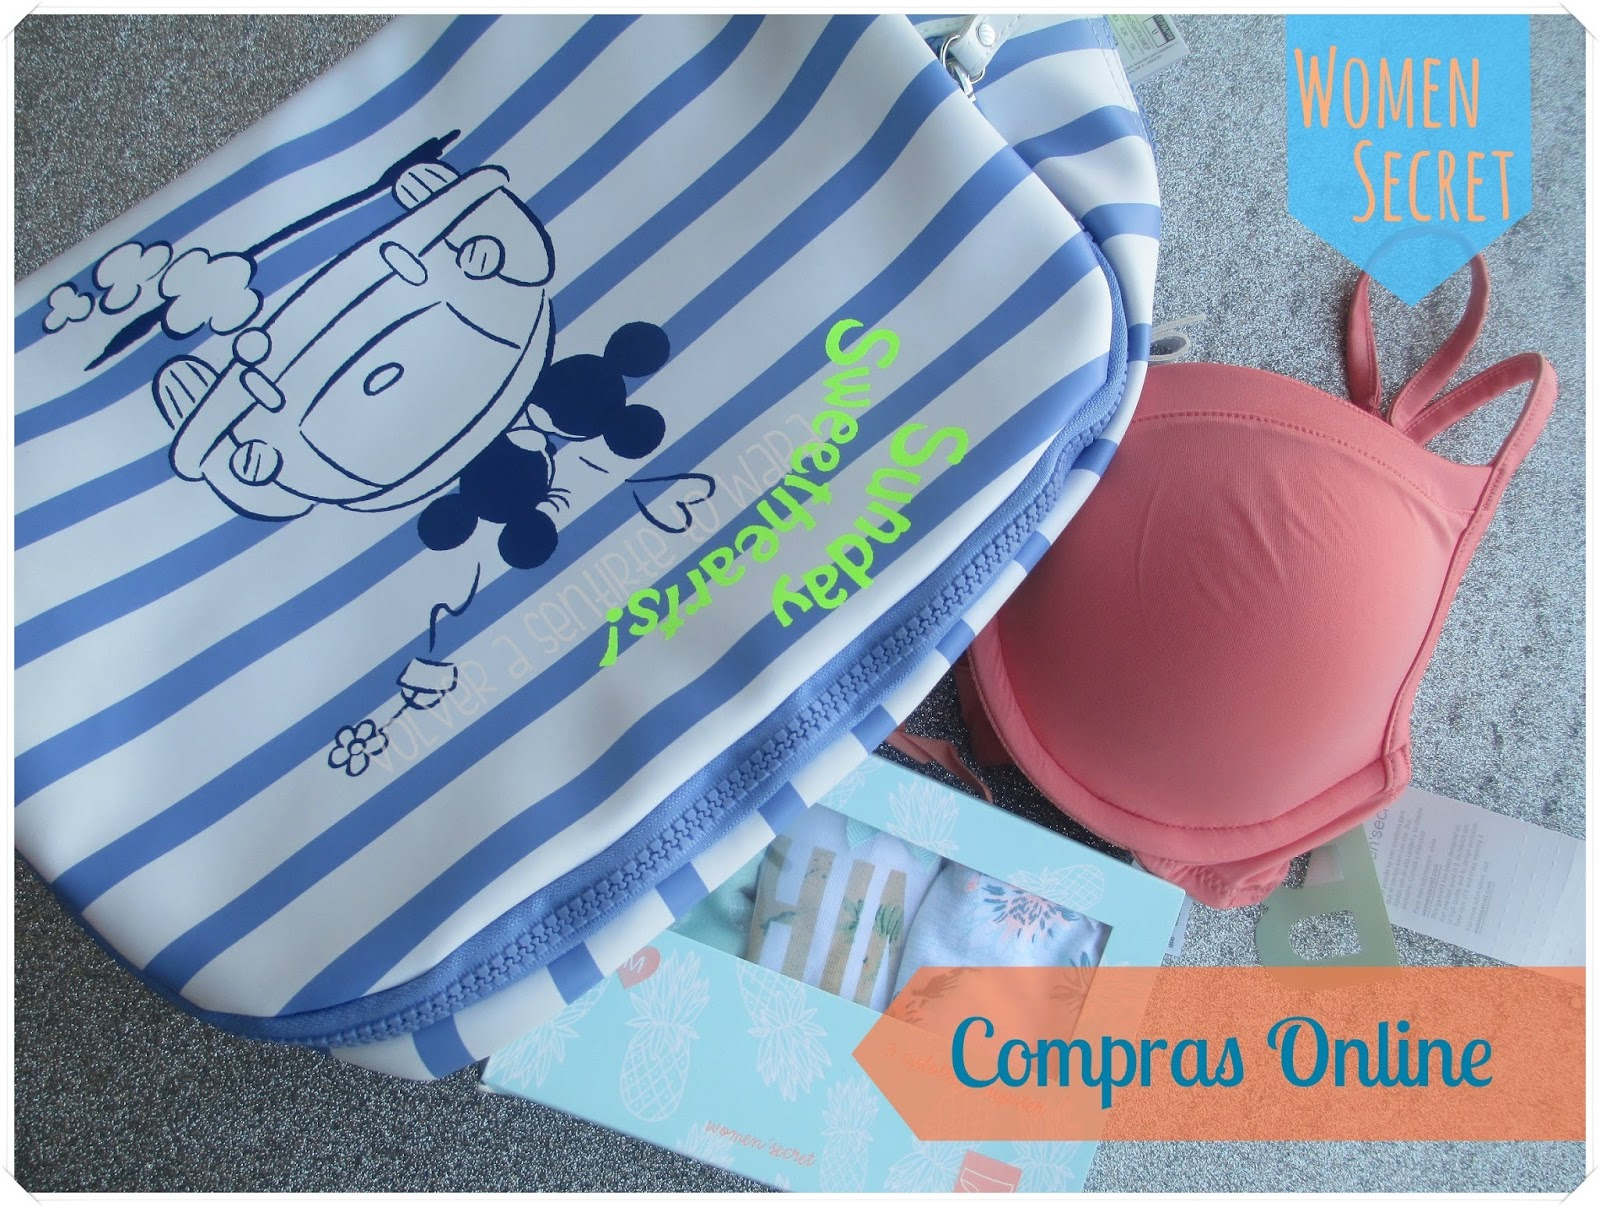 Compras Online: Women Secret